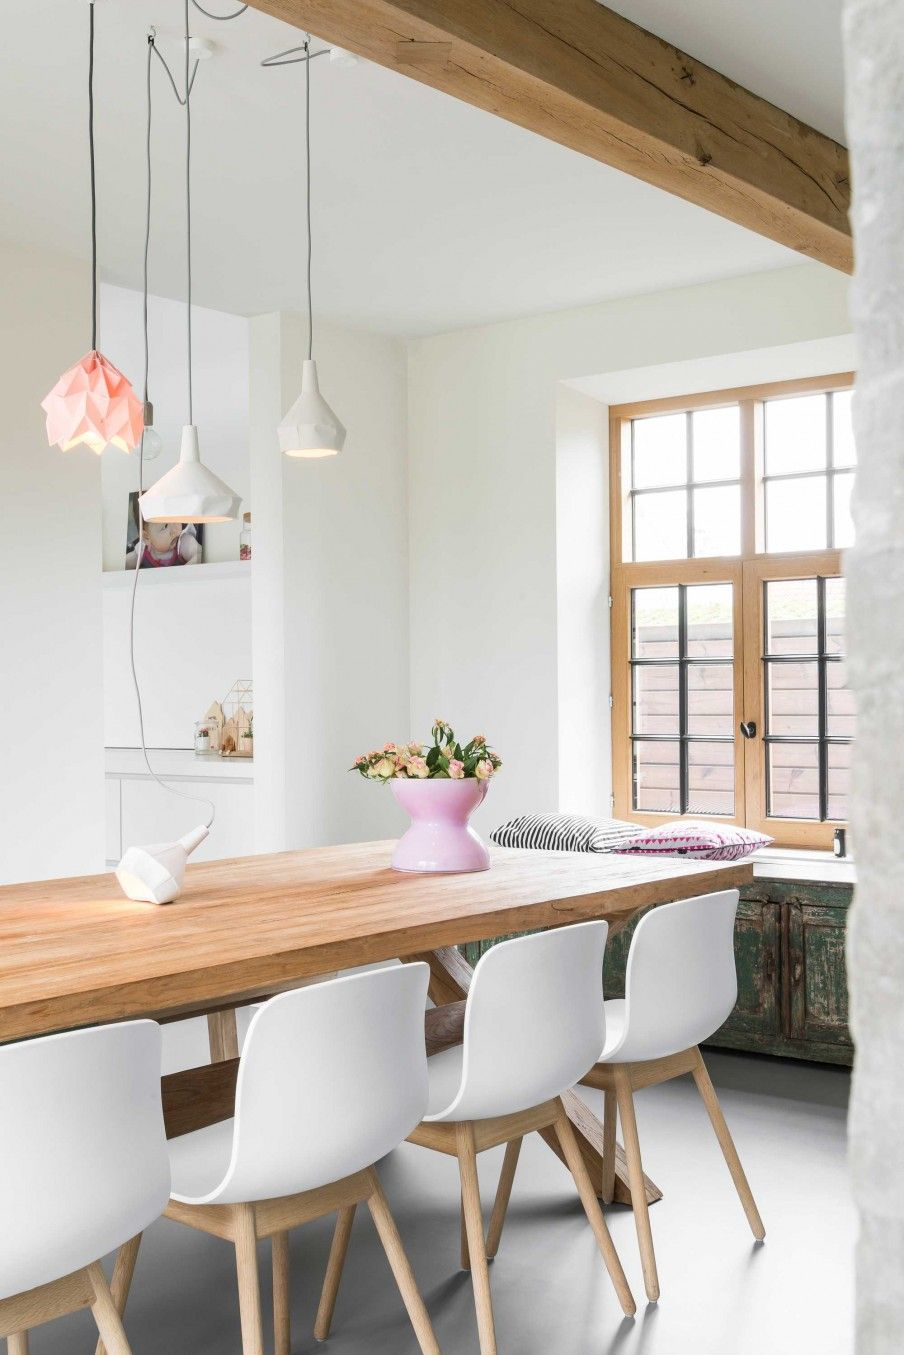 dining room, seamless floor, white wall, wooden table, white modern chairs, window seat, modern pendants